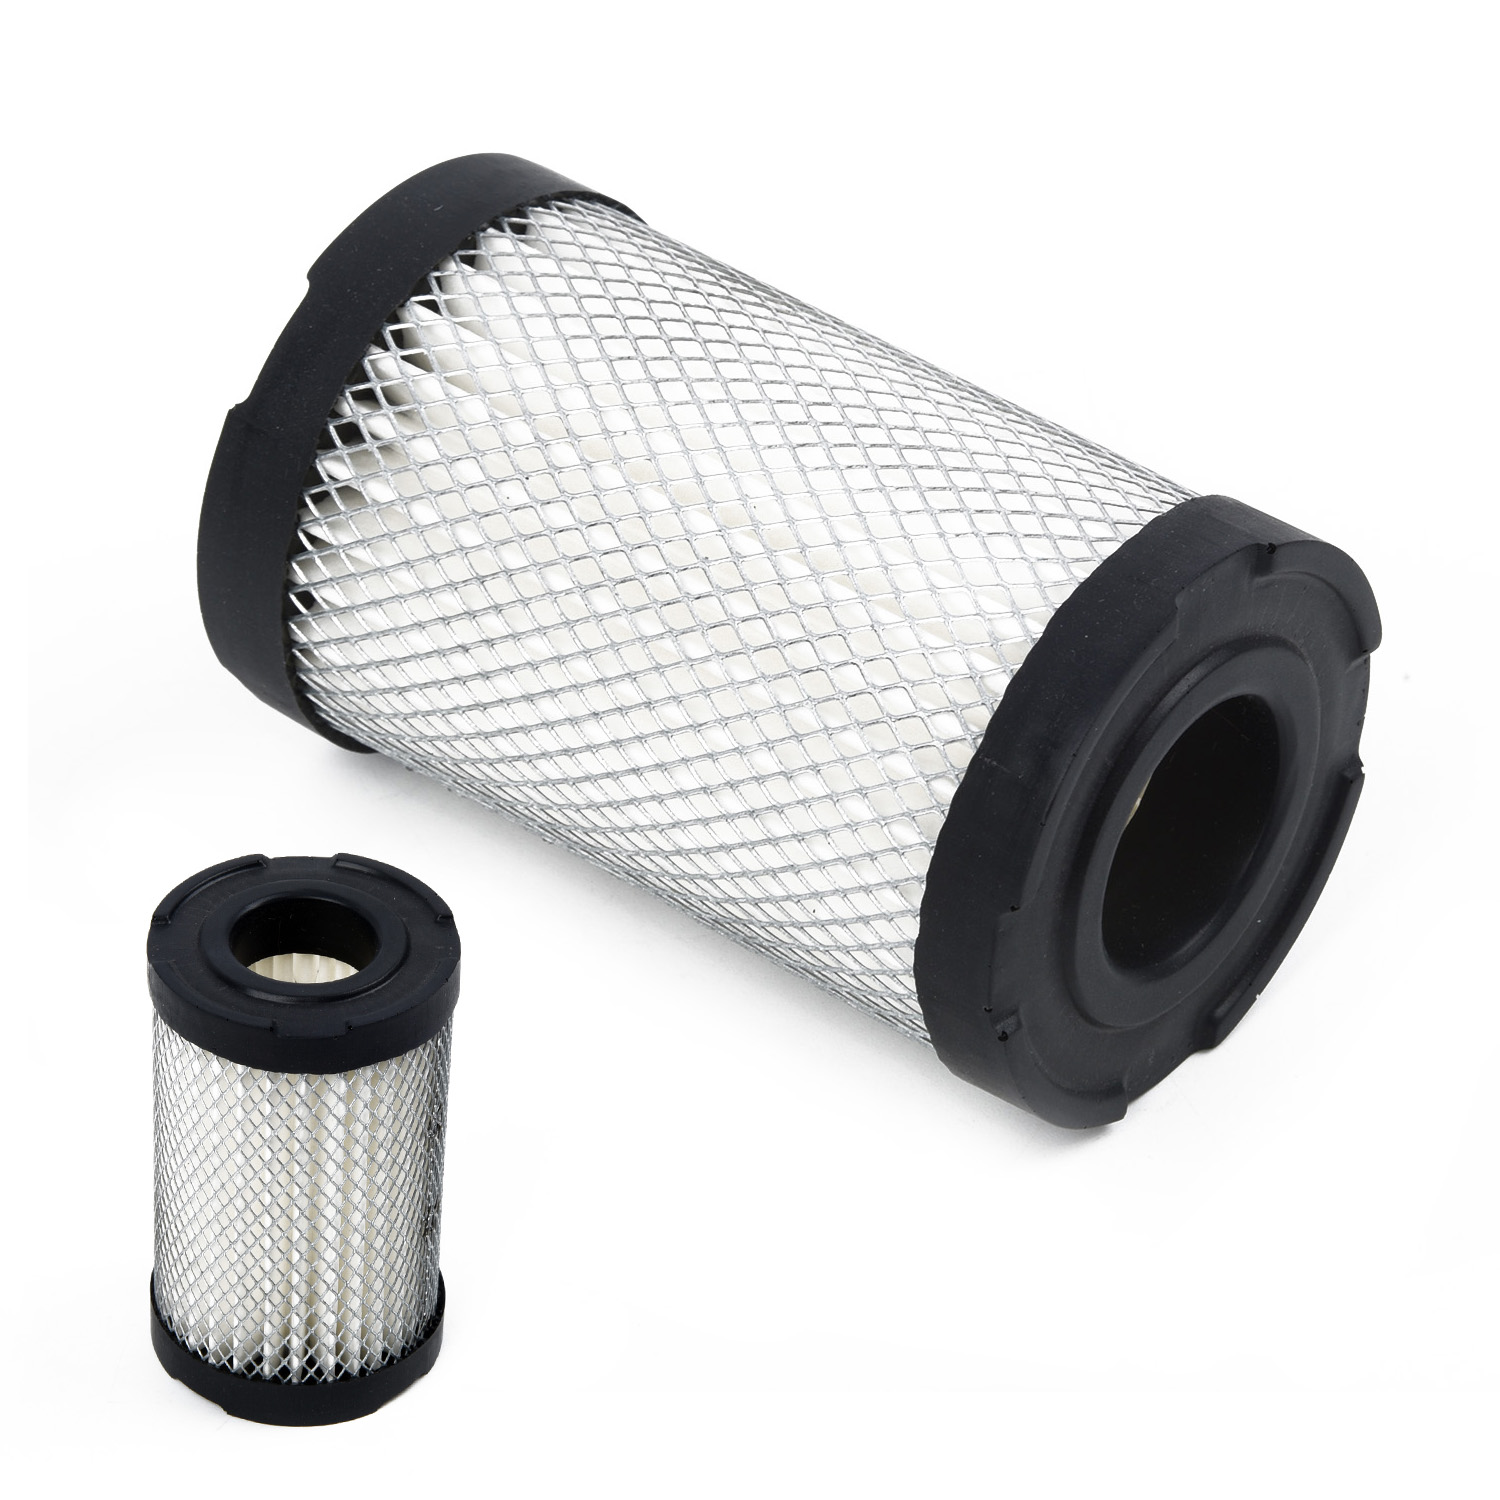 For Tecumseh 35066 Sears 10096 63087a Air Filter Fuel Lawn Mower Cone Intake Replacement Induction Accessories